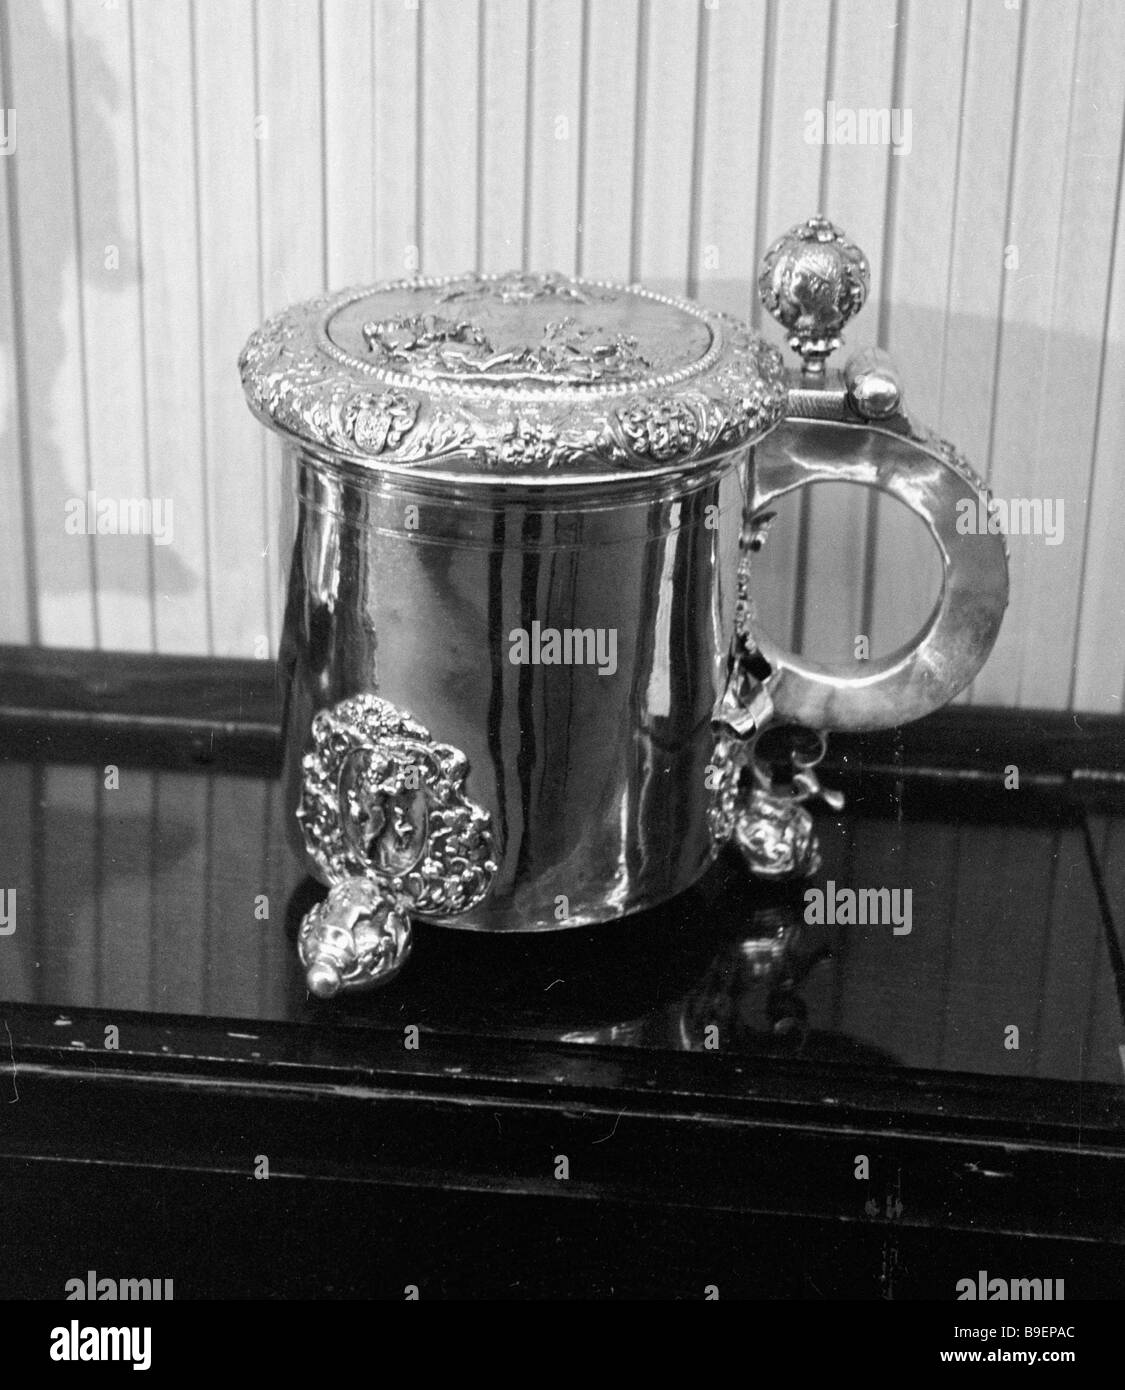 17th century silver cup a gift from Swedish King Karl XI to Riga Magistro from Riga History Museum collection - Stock Image